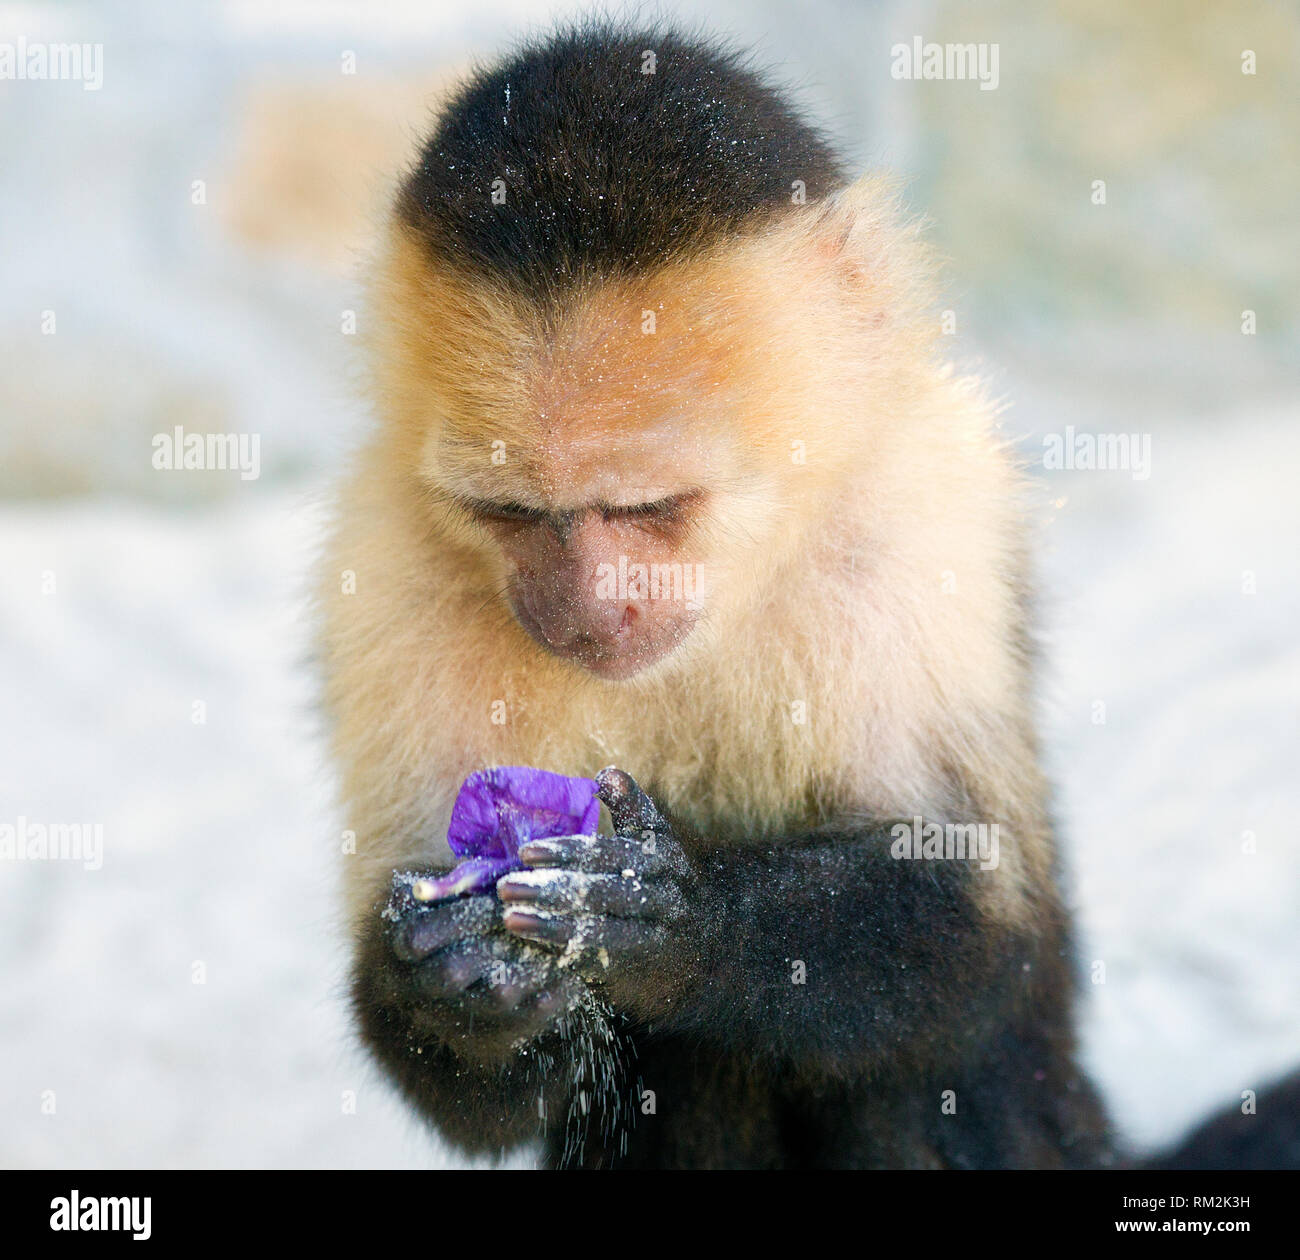 Capuchin Monkey Holding and Contemplating a Purple Flower Stock Photo